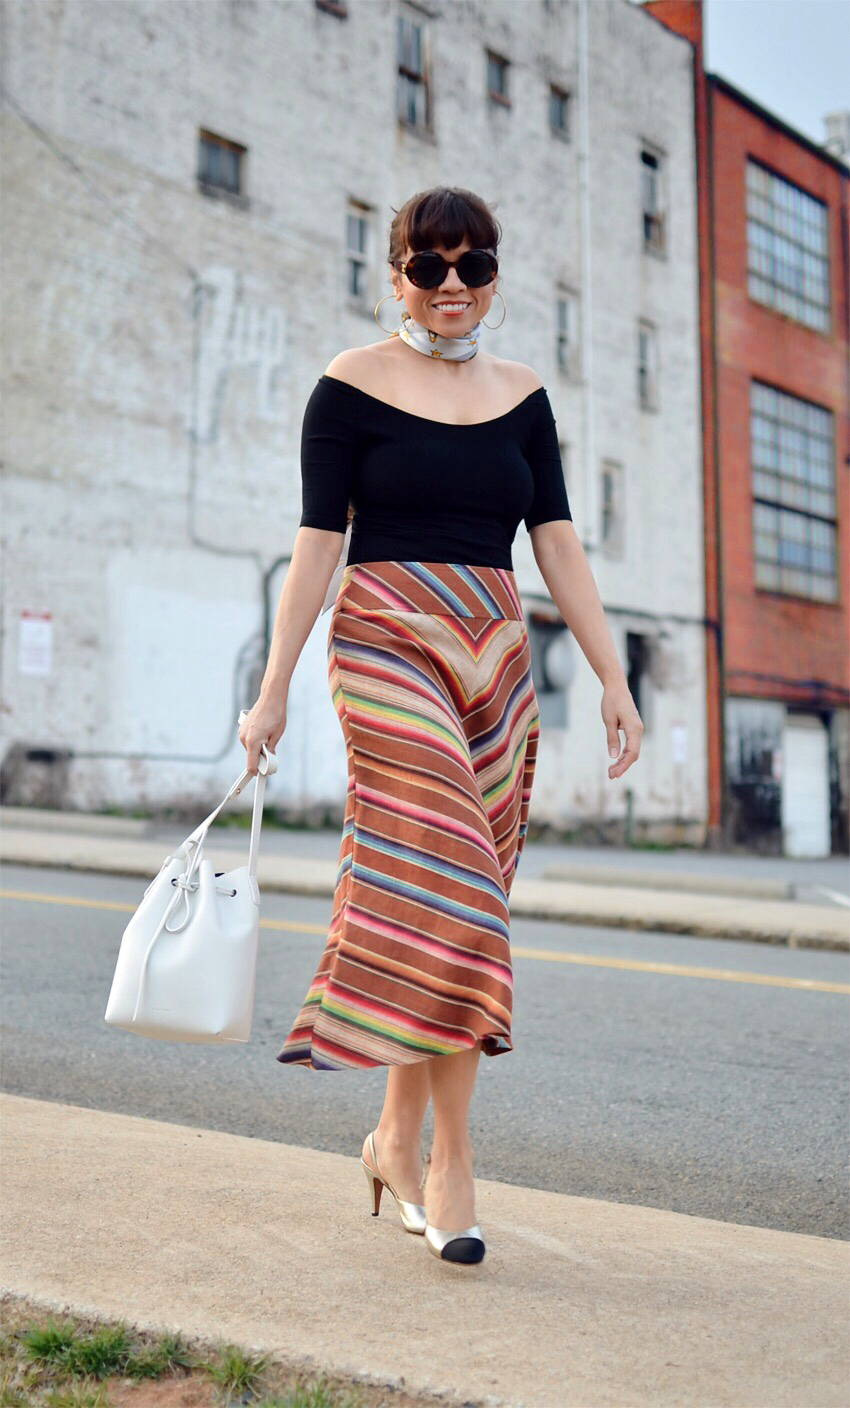 Striped skirt street style